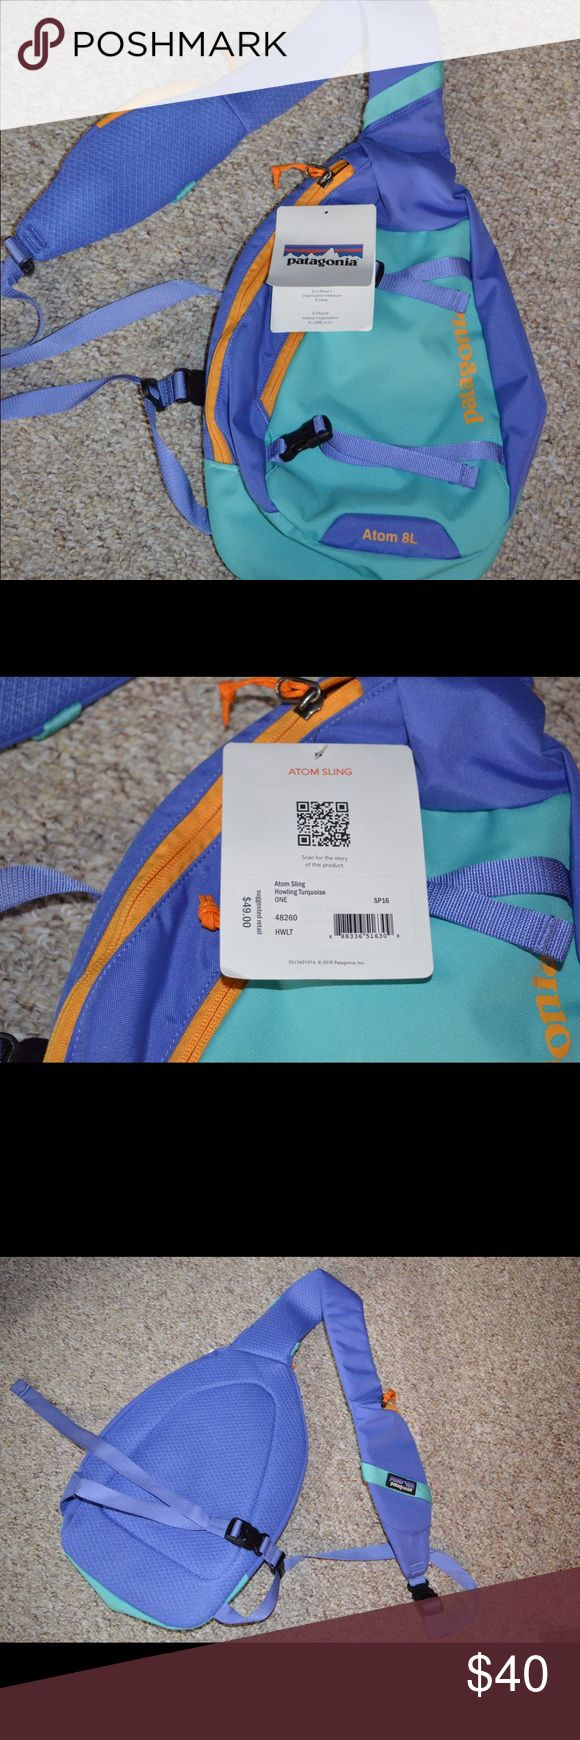 New With Tags Patagonia Atom Sling Patagonia Atom 8l Sling, Colors Aqua  Blue Green And